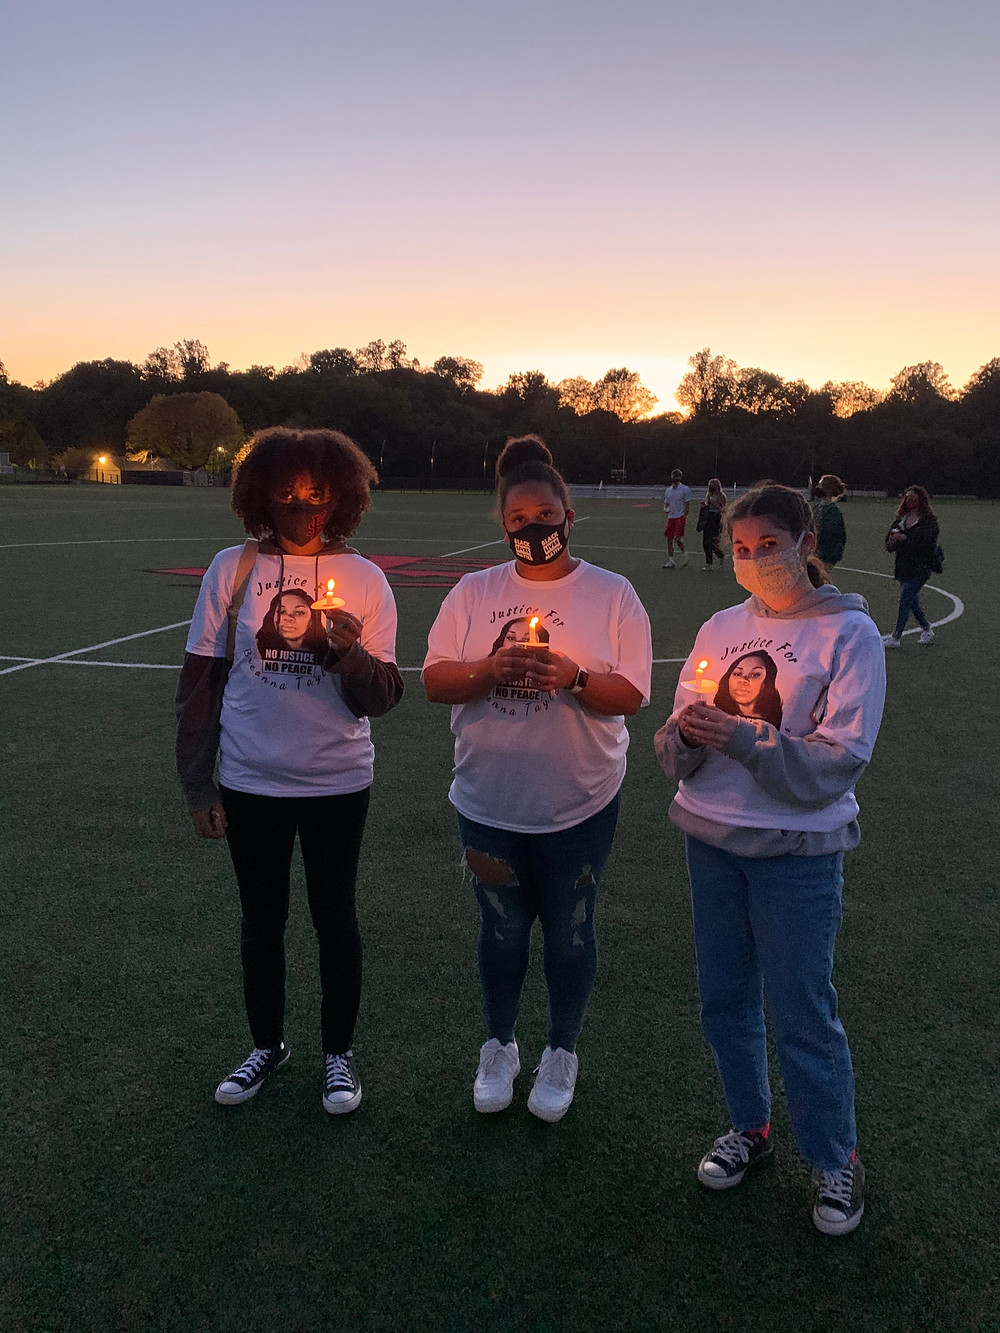 Students Amina West, Kayla Kurtz, and Bryce Carlin attend a vigil on the Friends campus for police shooting victim Breonna Taylor: a peaceful commemoration in a summer when many protests were met with violence.